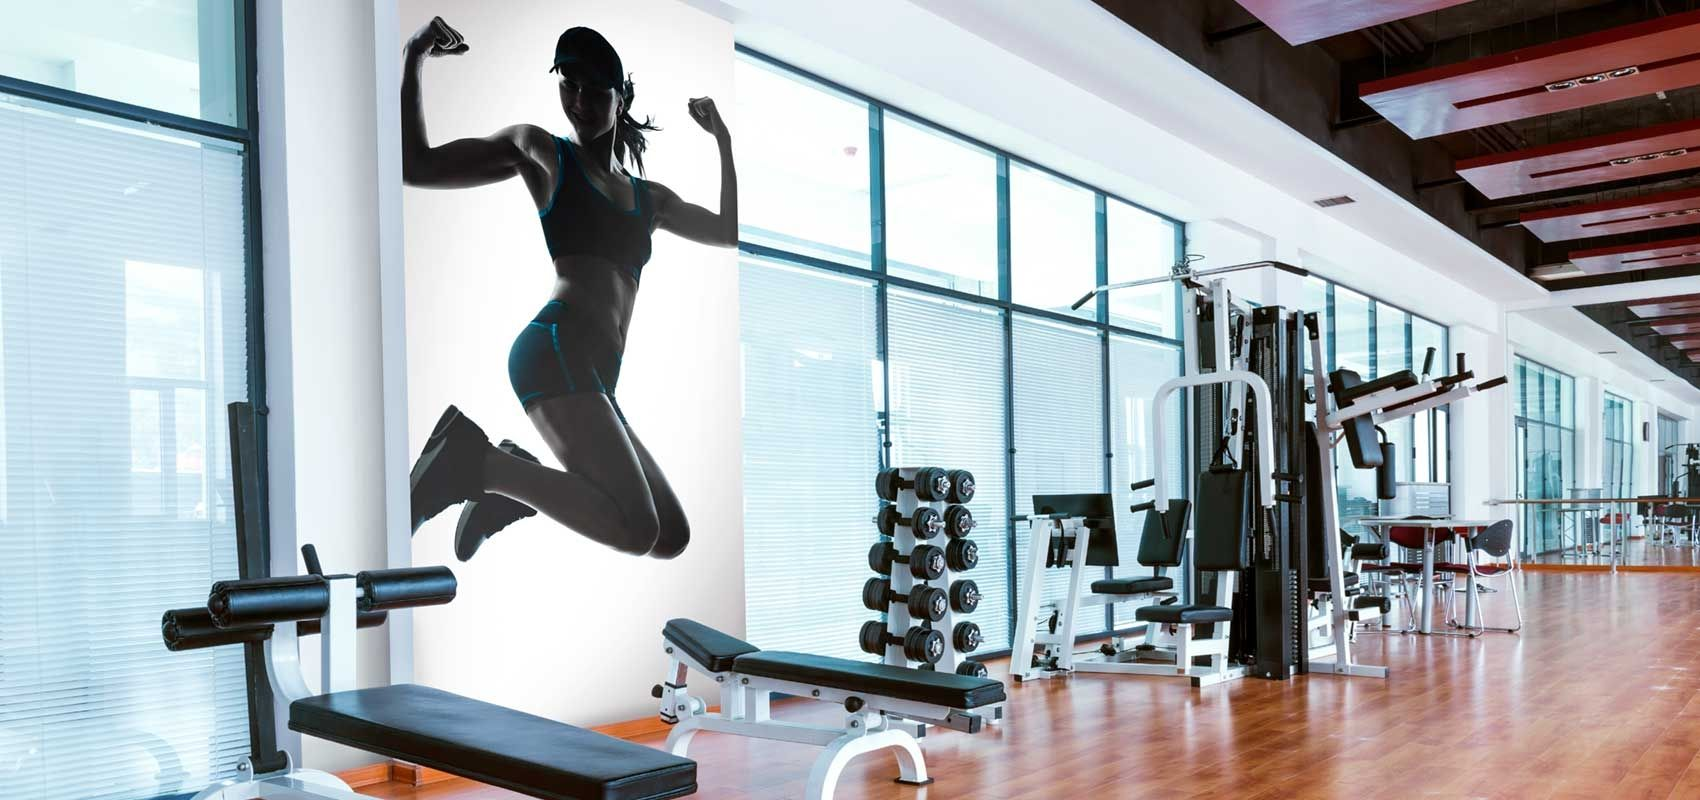 Image result for weight training mural mural gym